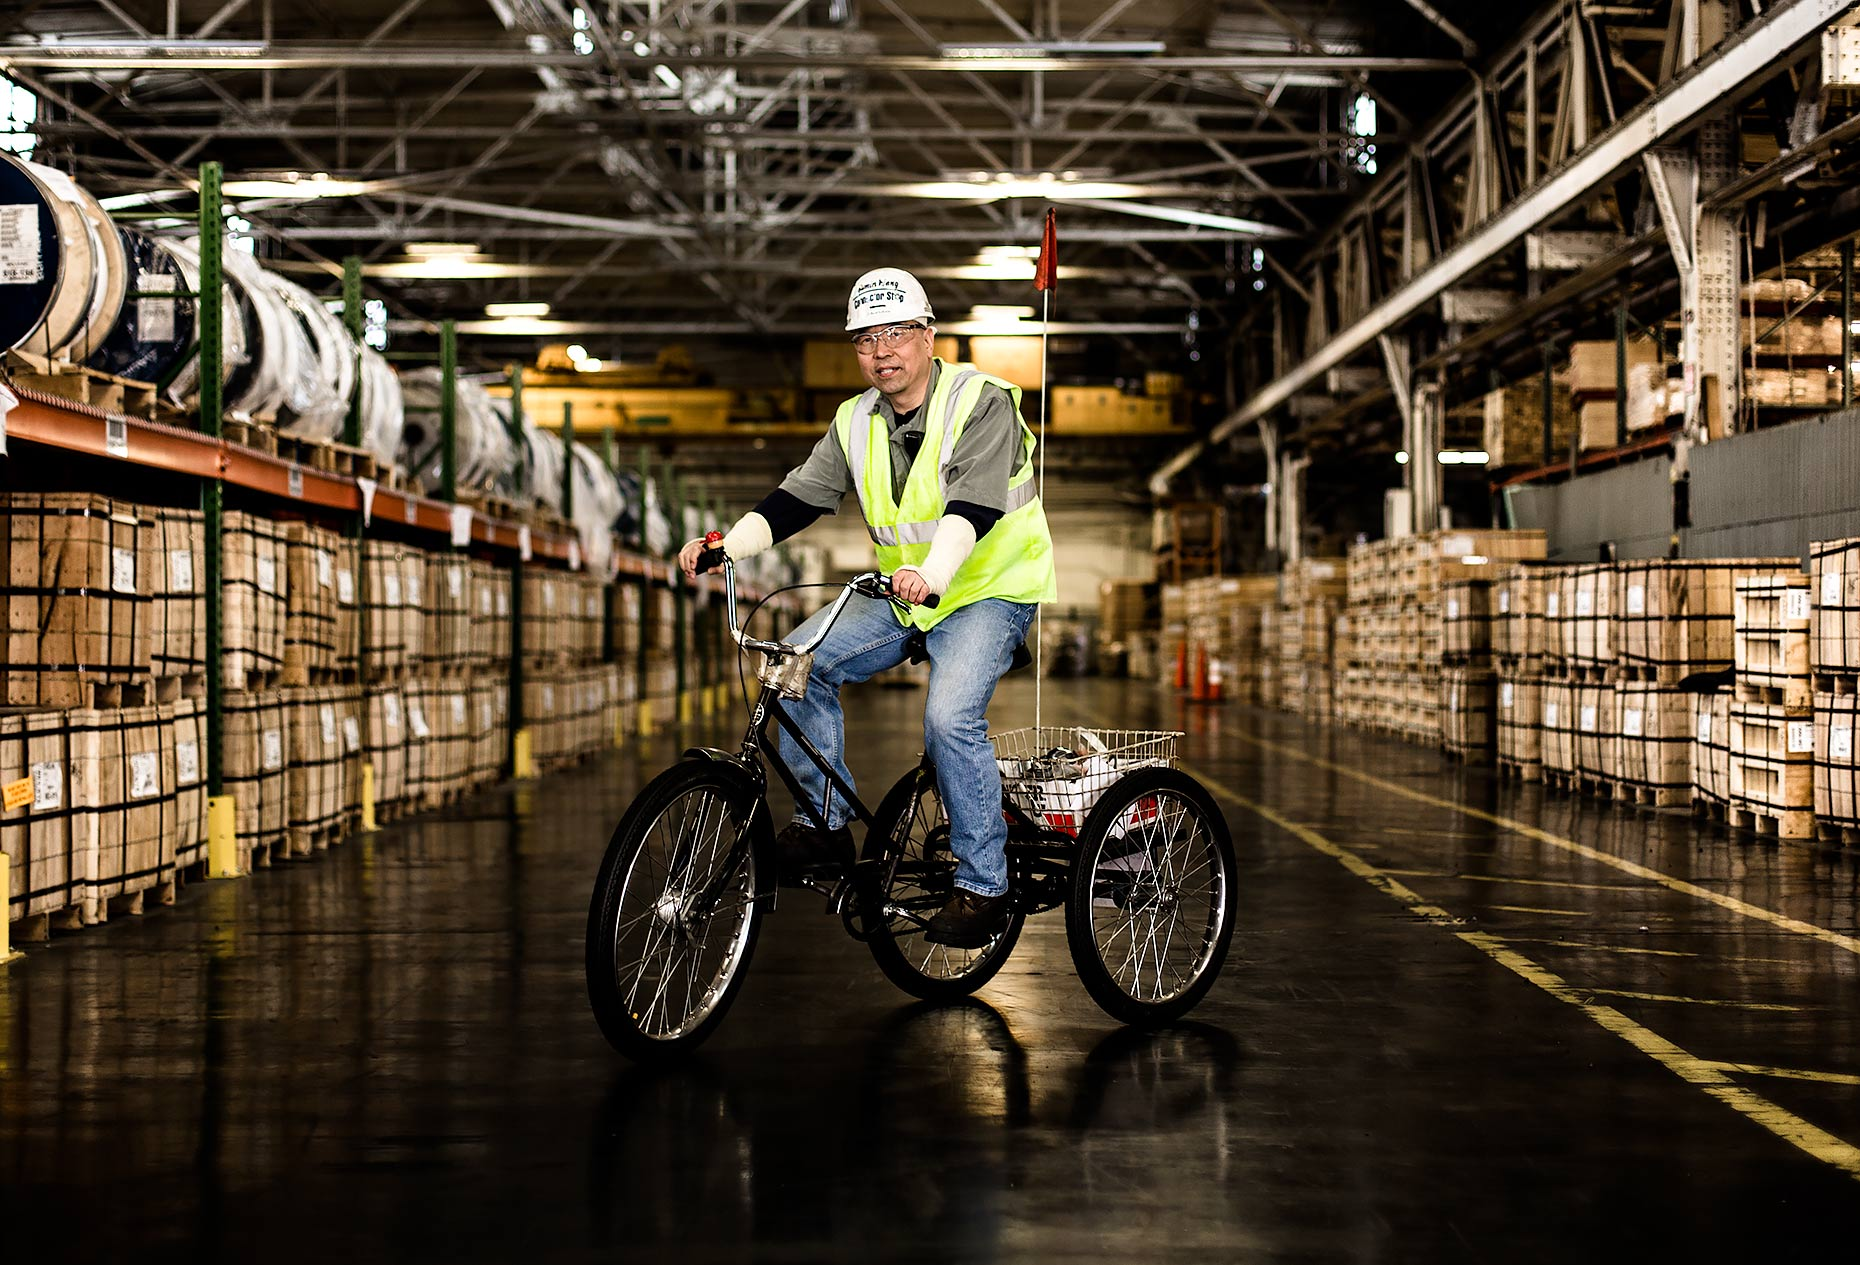 Tricycles used to pedal around Aurubis main facility | Scott Gable is an advertising and editorial photographer providing photography and video to corporate, industrial, healthcare and bio-science clients worldwide.